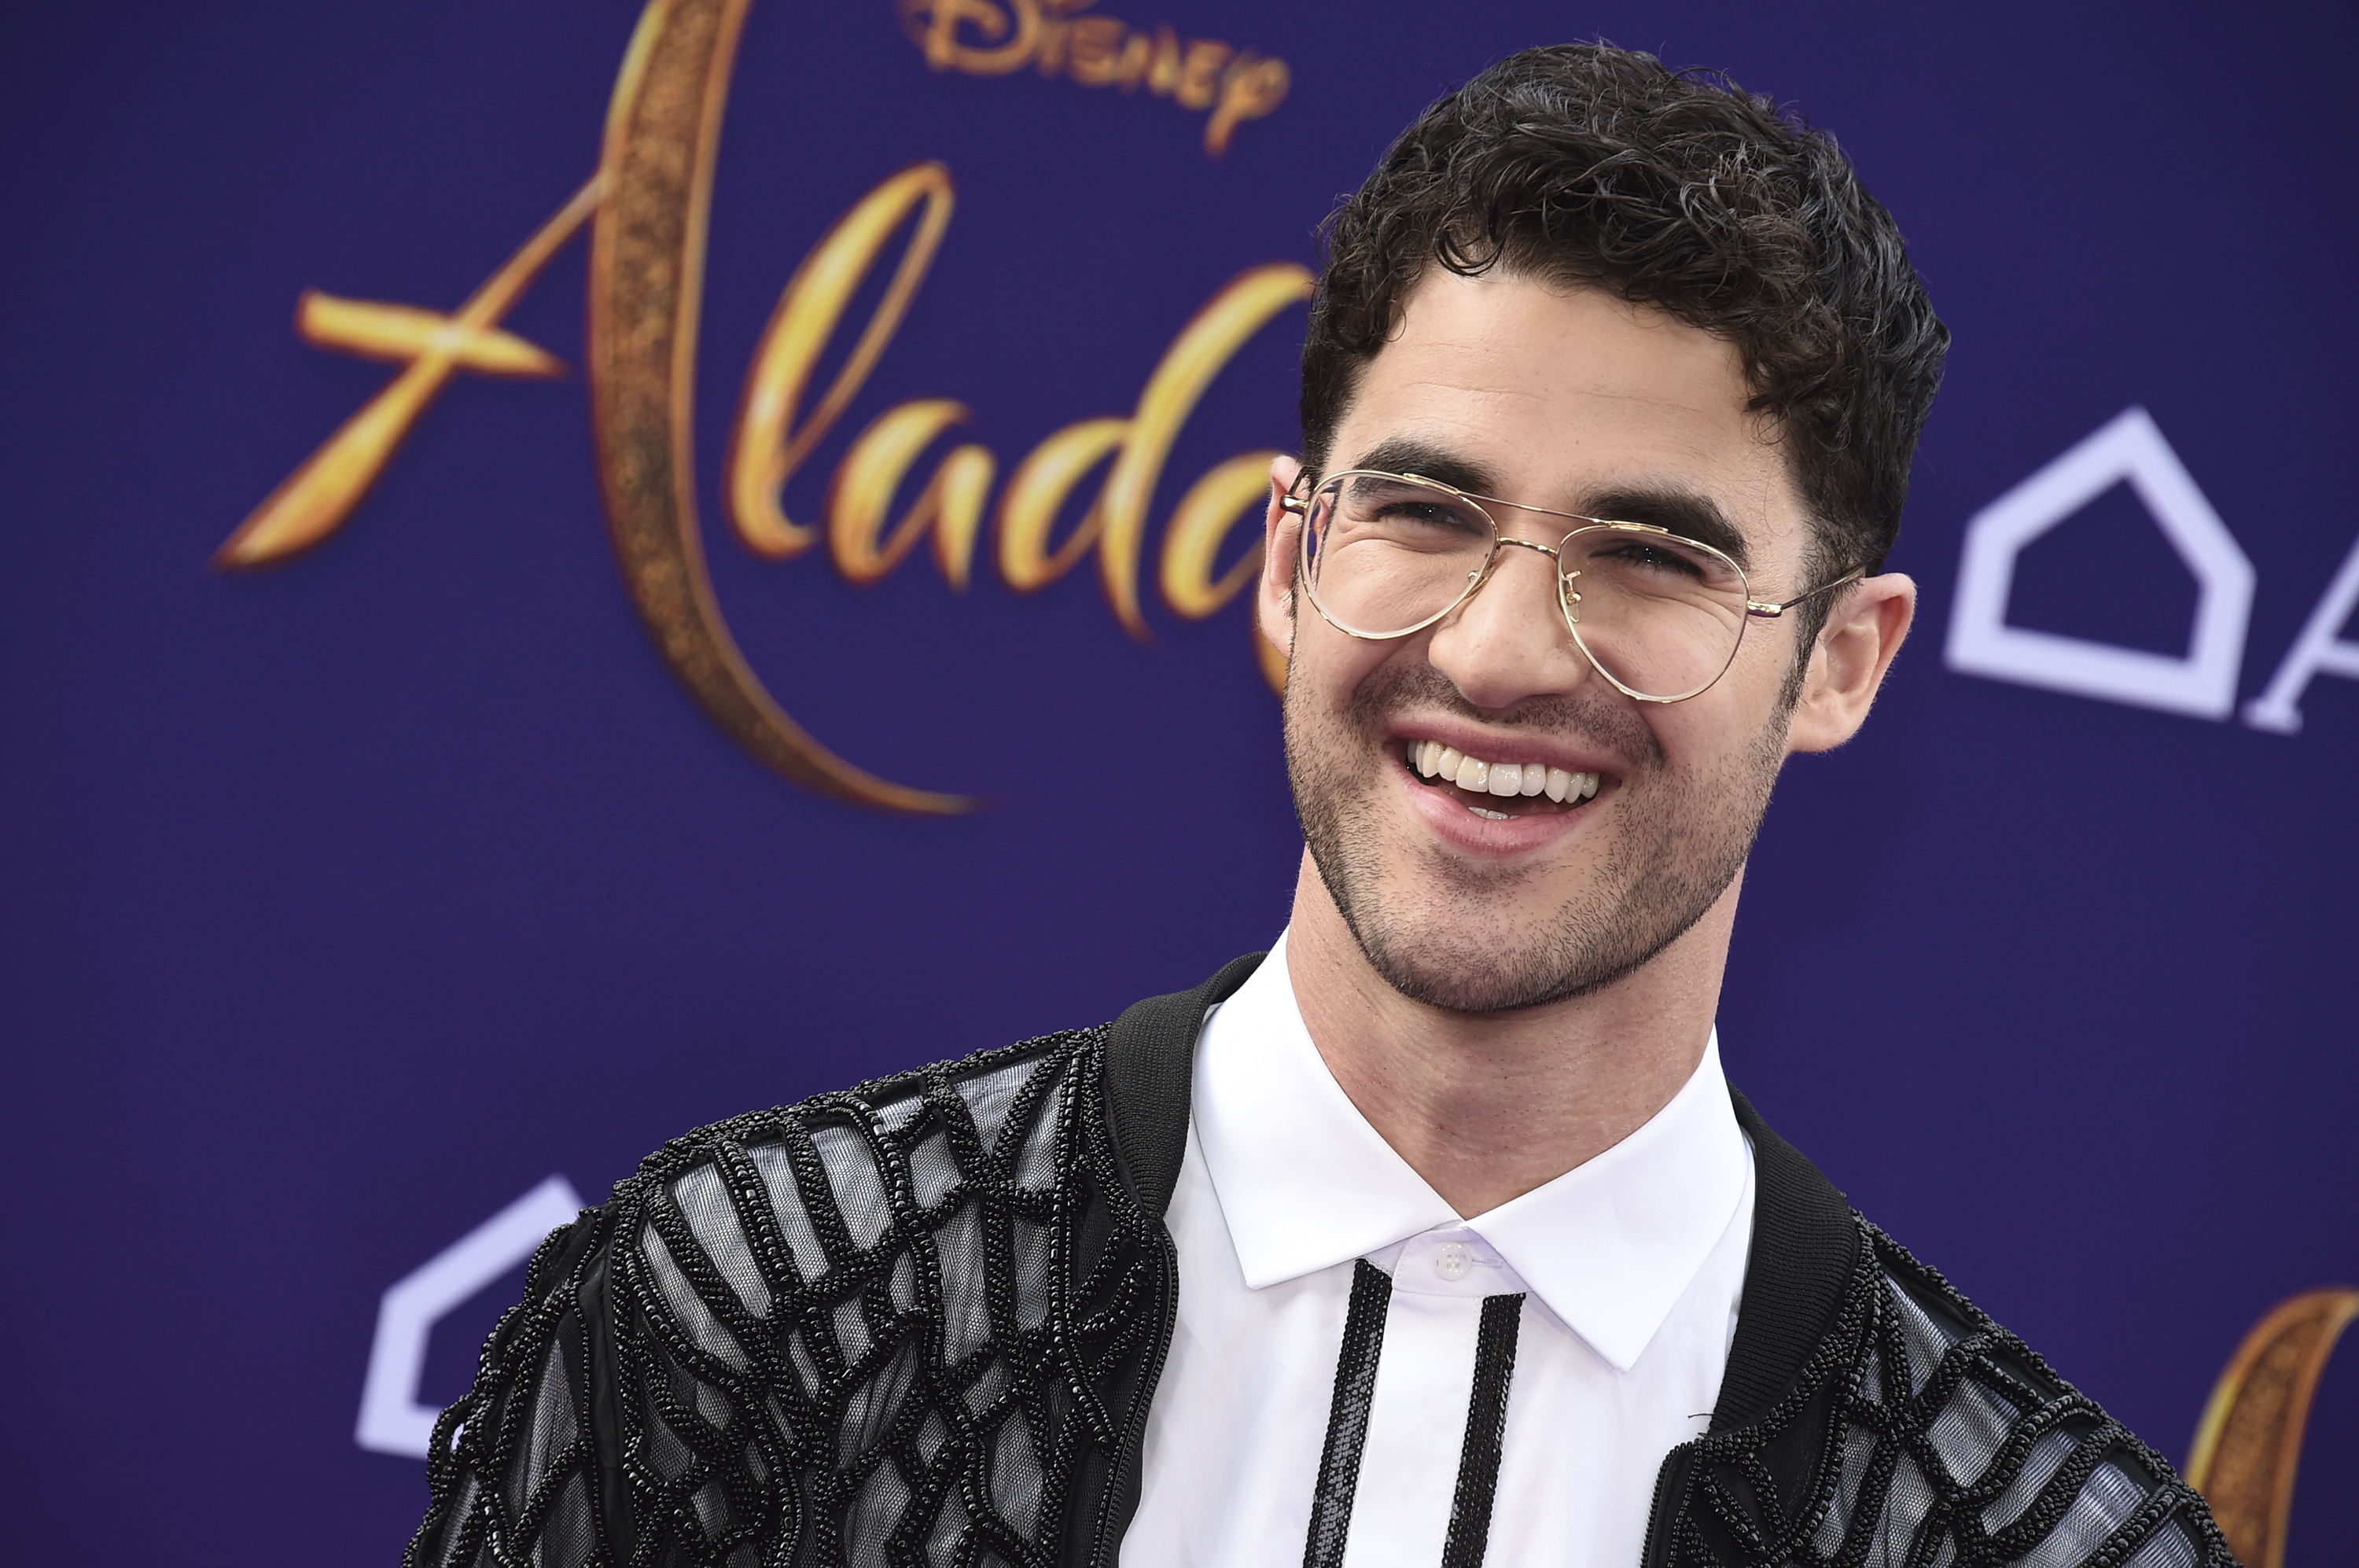 Darren Criss. (Photo by Jordan Strauss/Invision/AP)